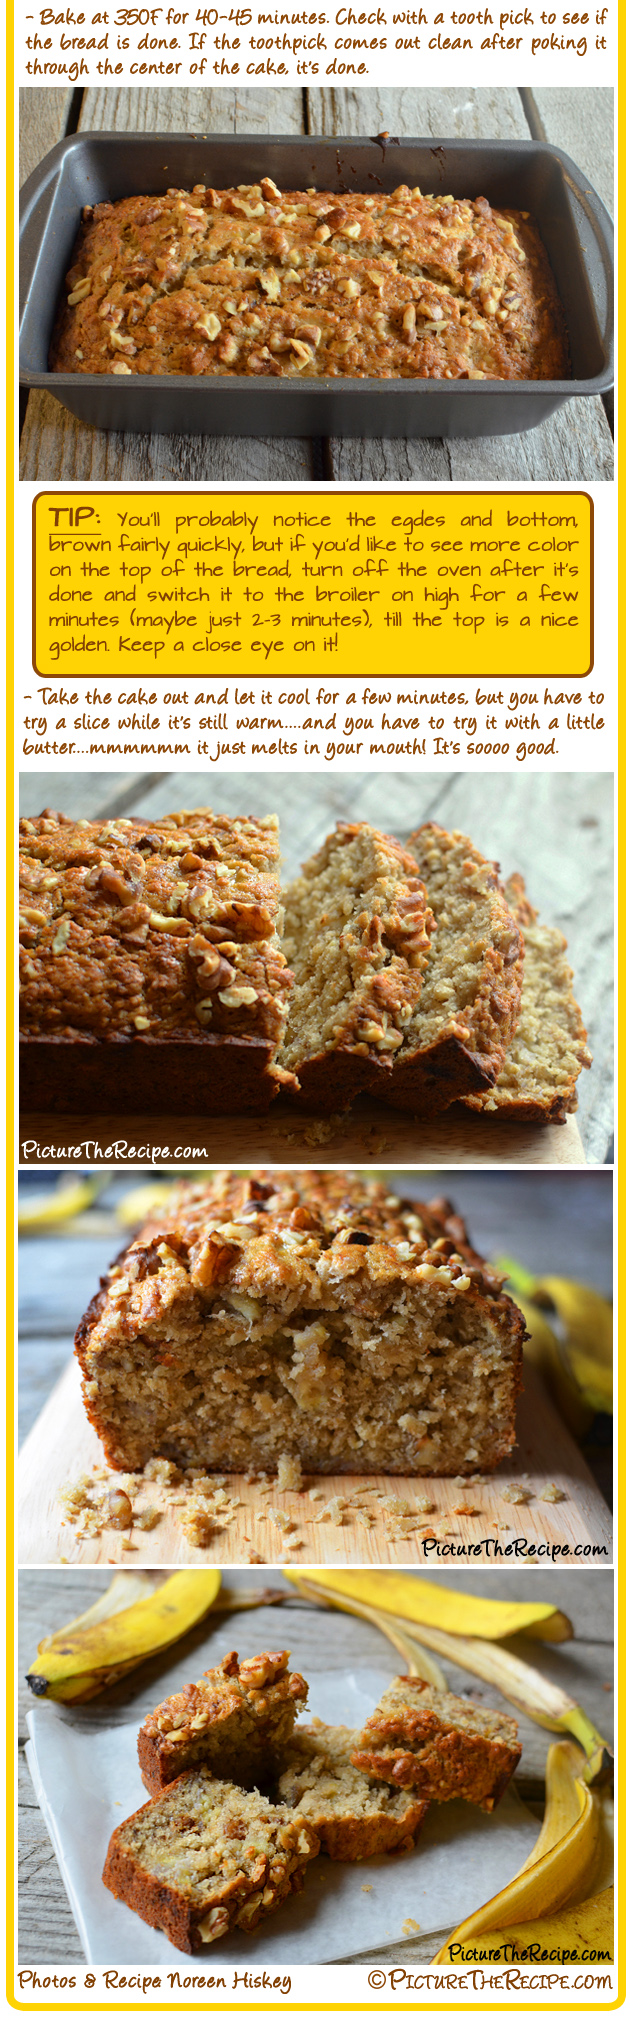 Honey walnut banana bread picture the recipe watch a video for this recipe forumfinder Choice Image